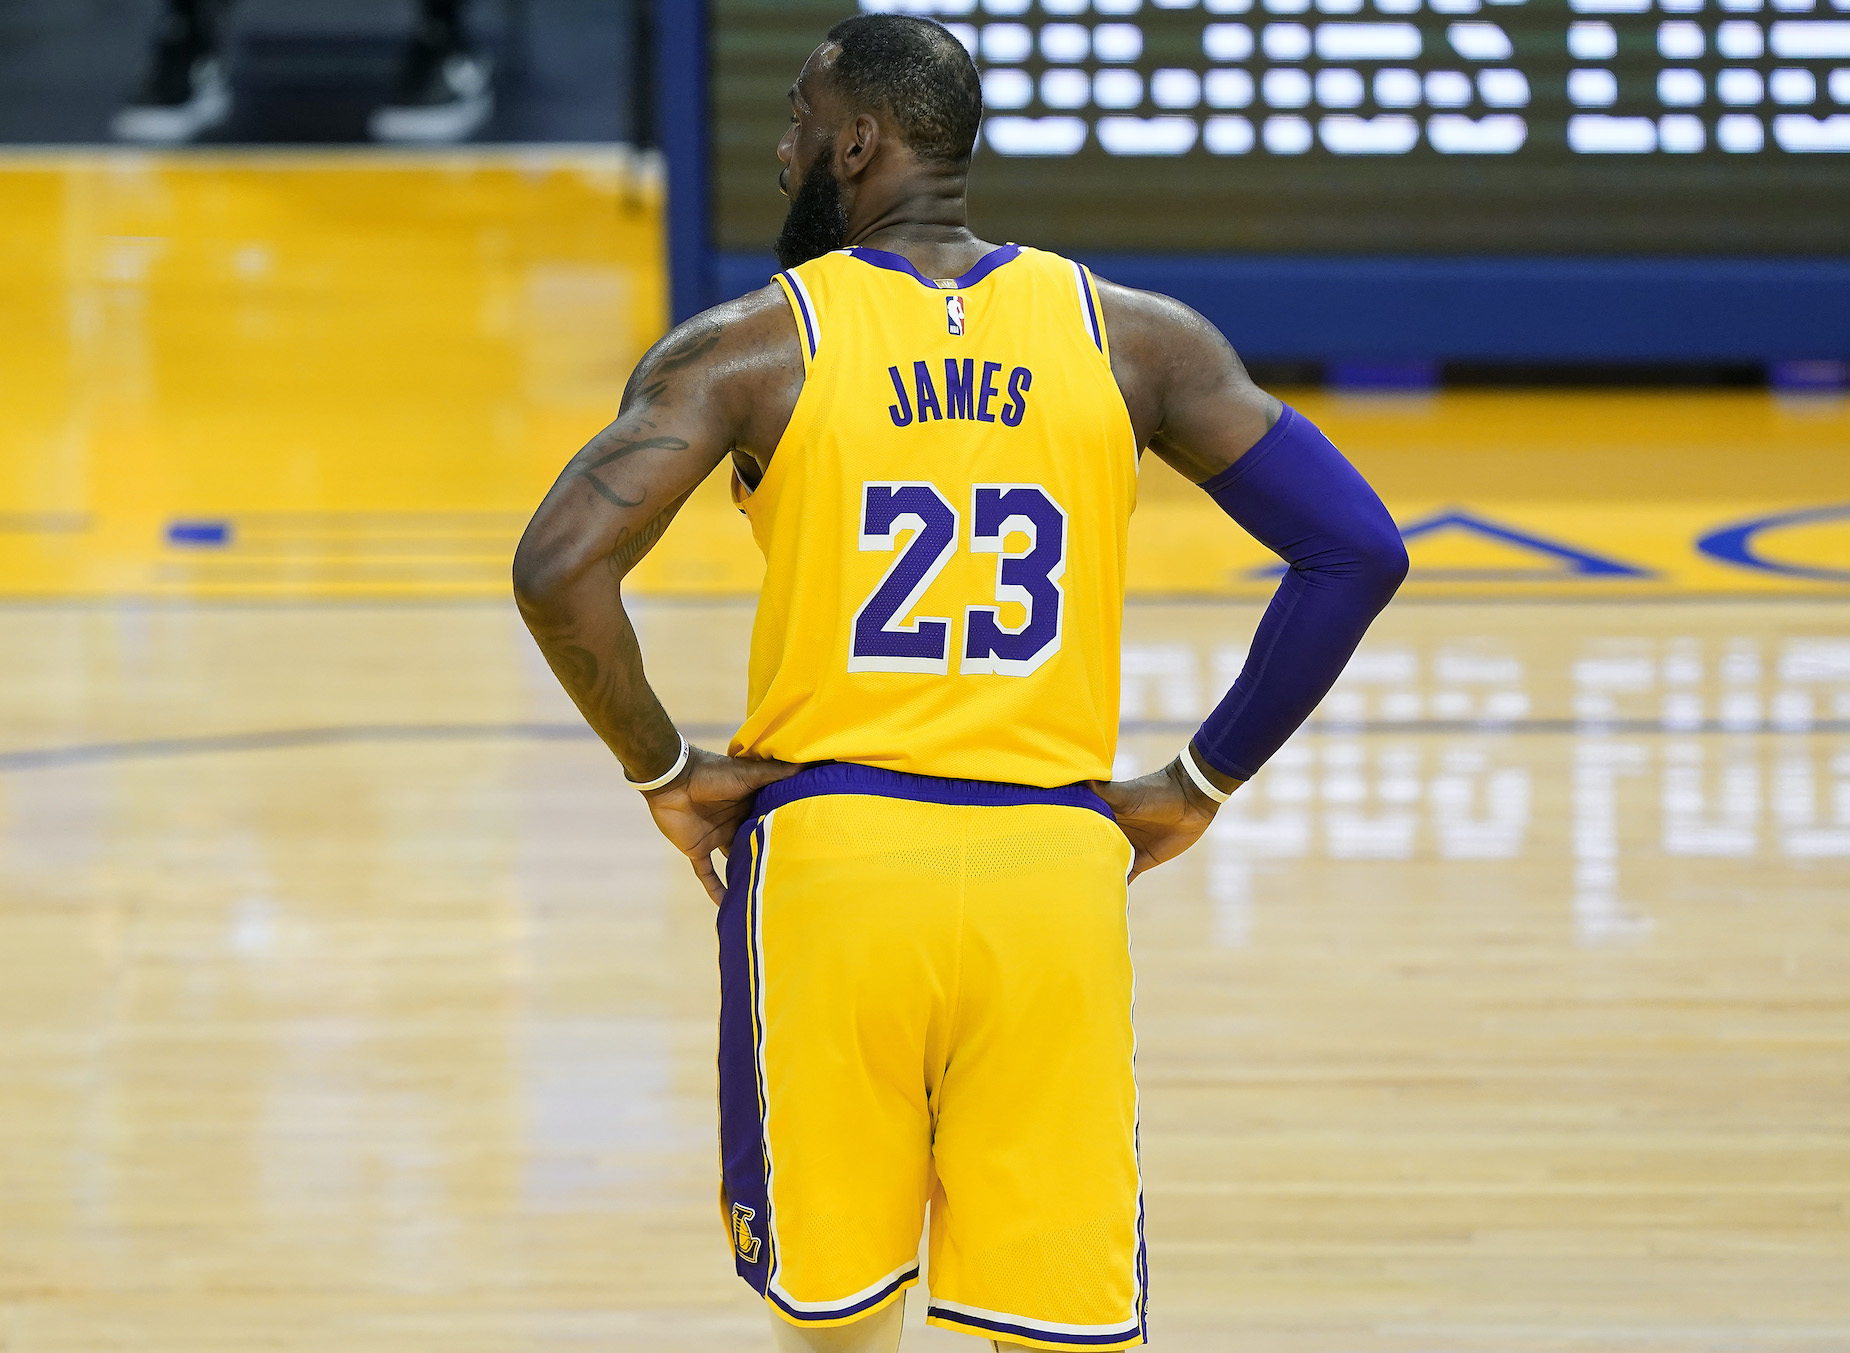 LeBron James stands on the court for the LA Lakers.